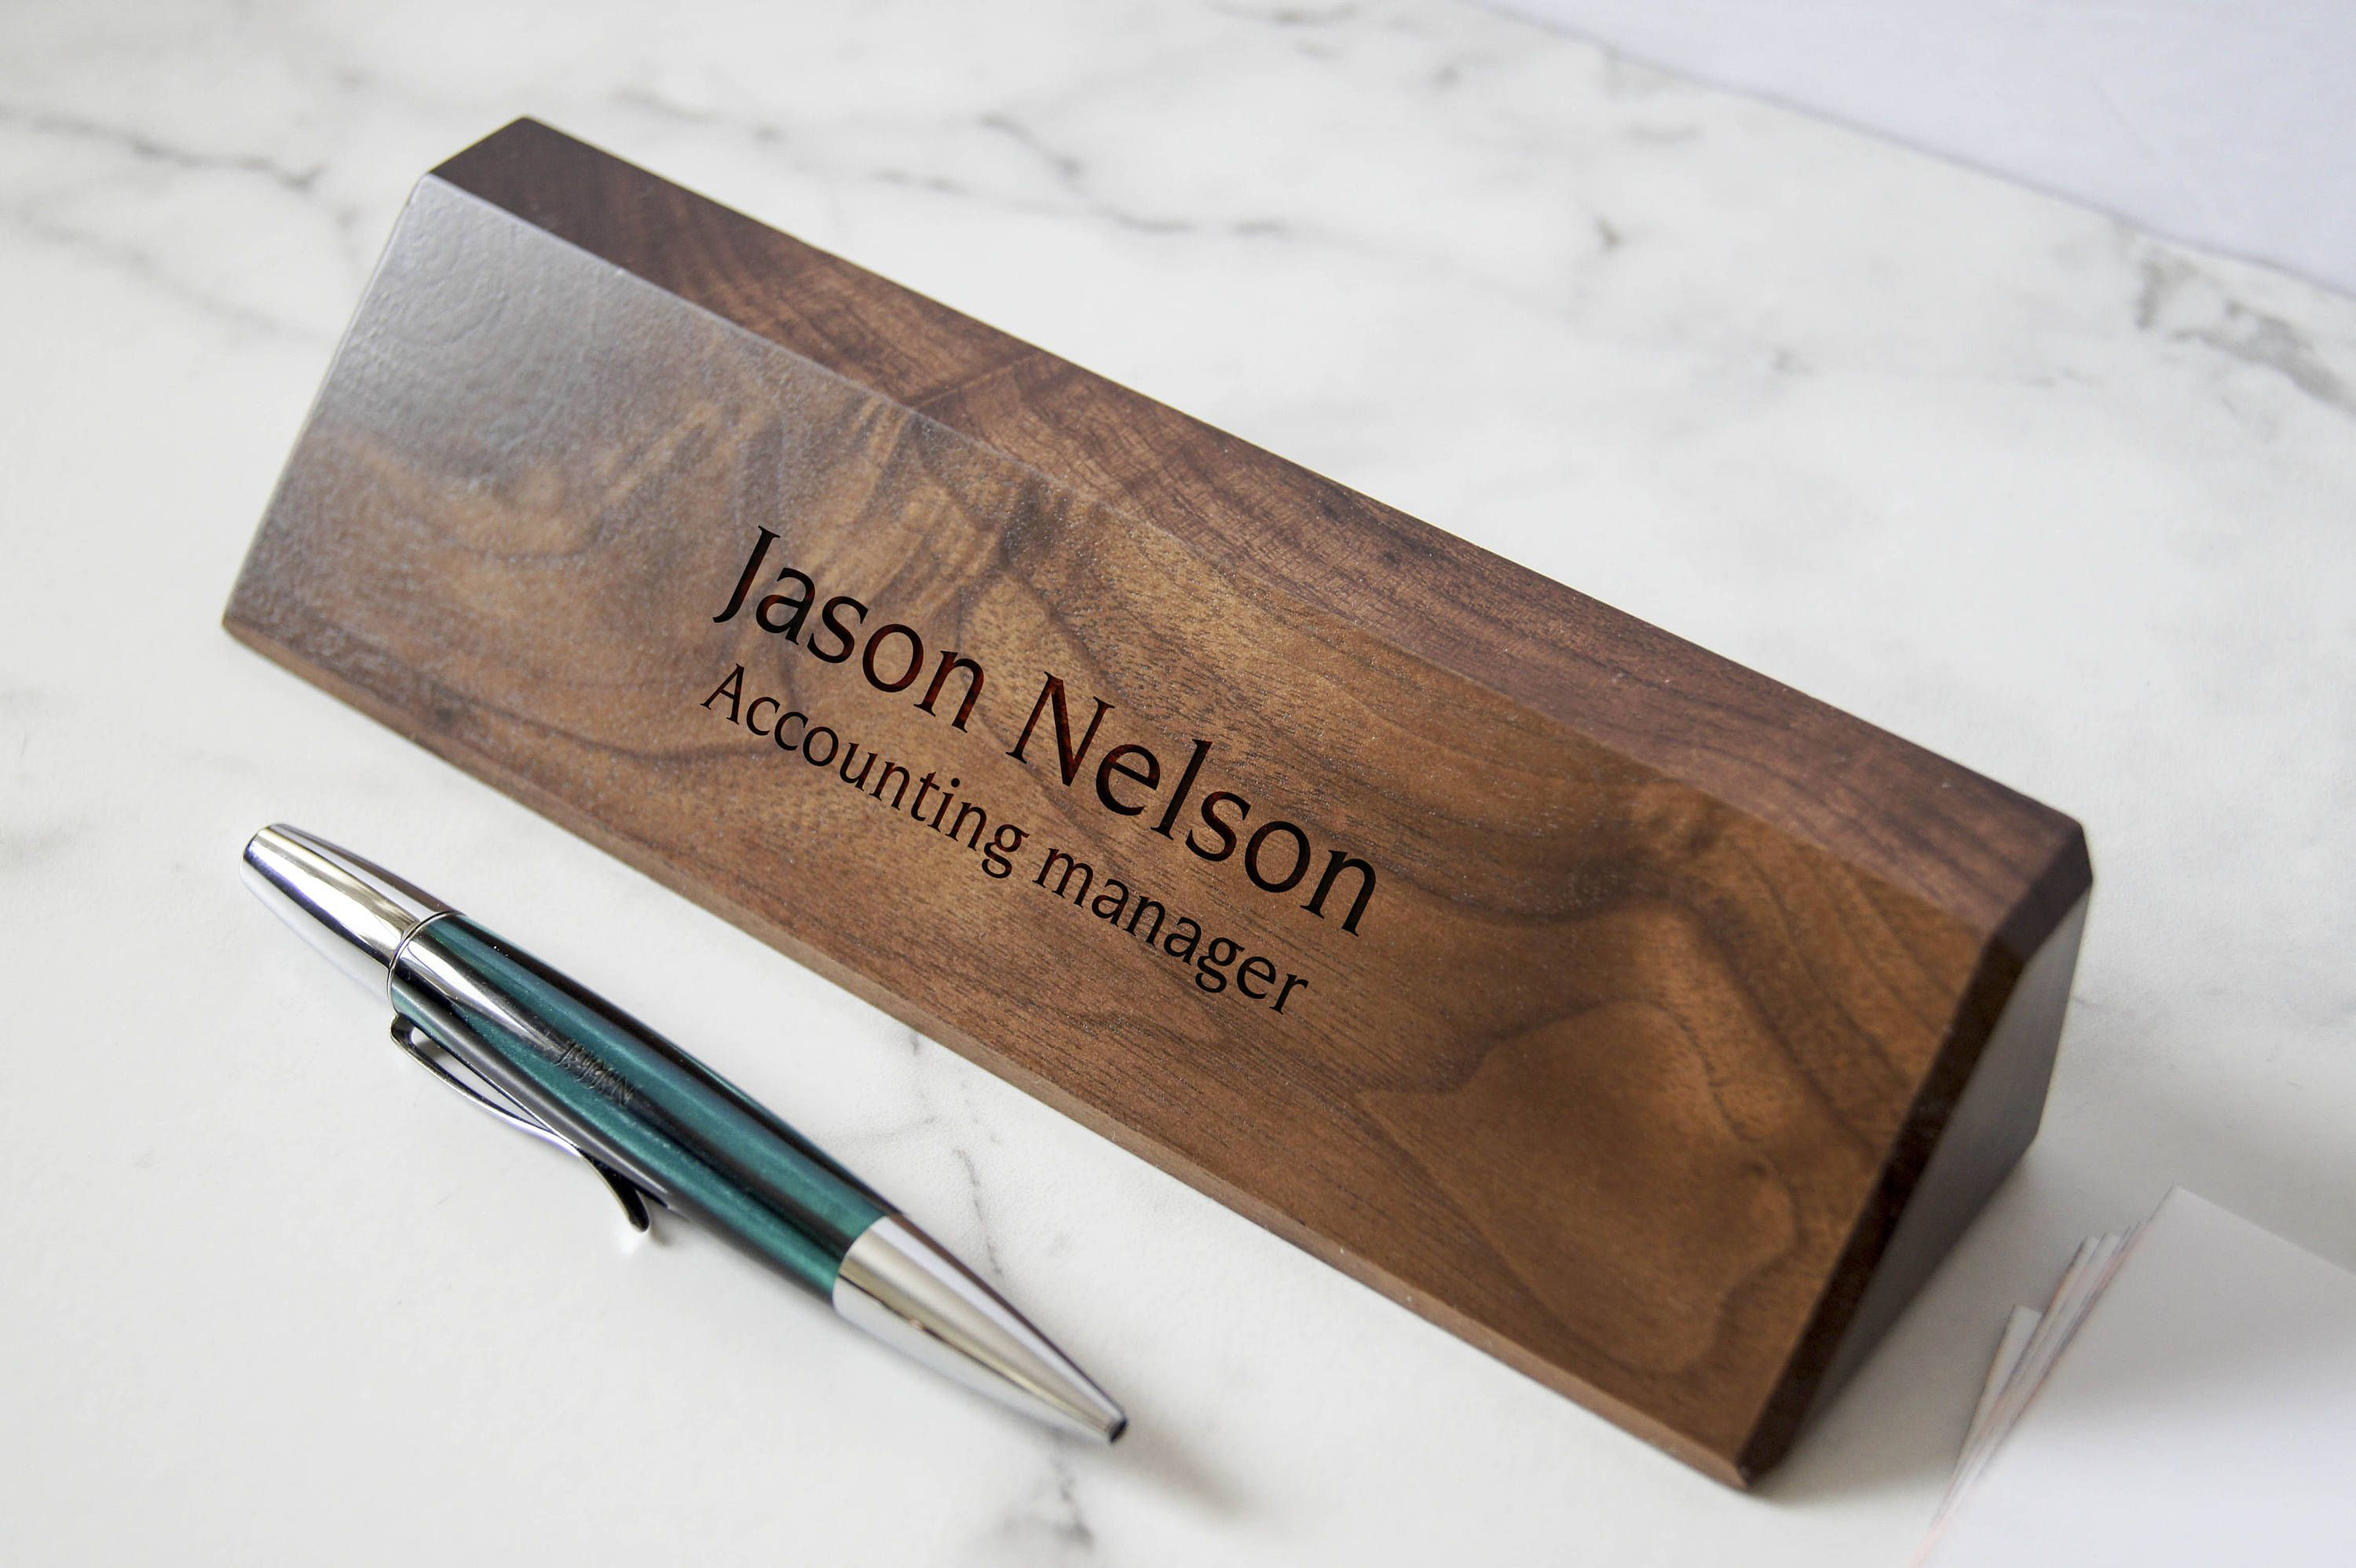 Personalized Wooden Desk Name Customized Walnut Desk Name Executive Personalized Desk Name Plate Wooden Office Sign Personalized Desk Name Plate Desk Name Plates Office Desk Name Plates